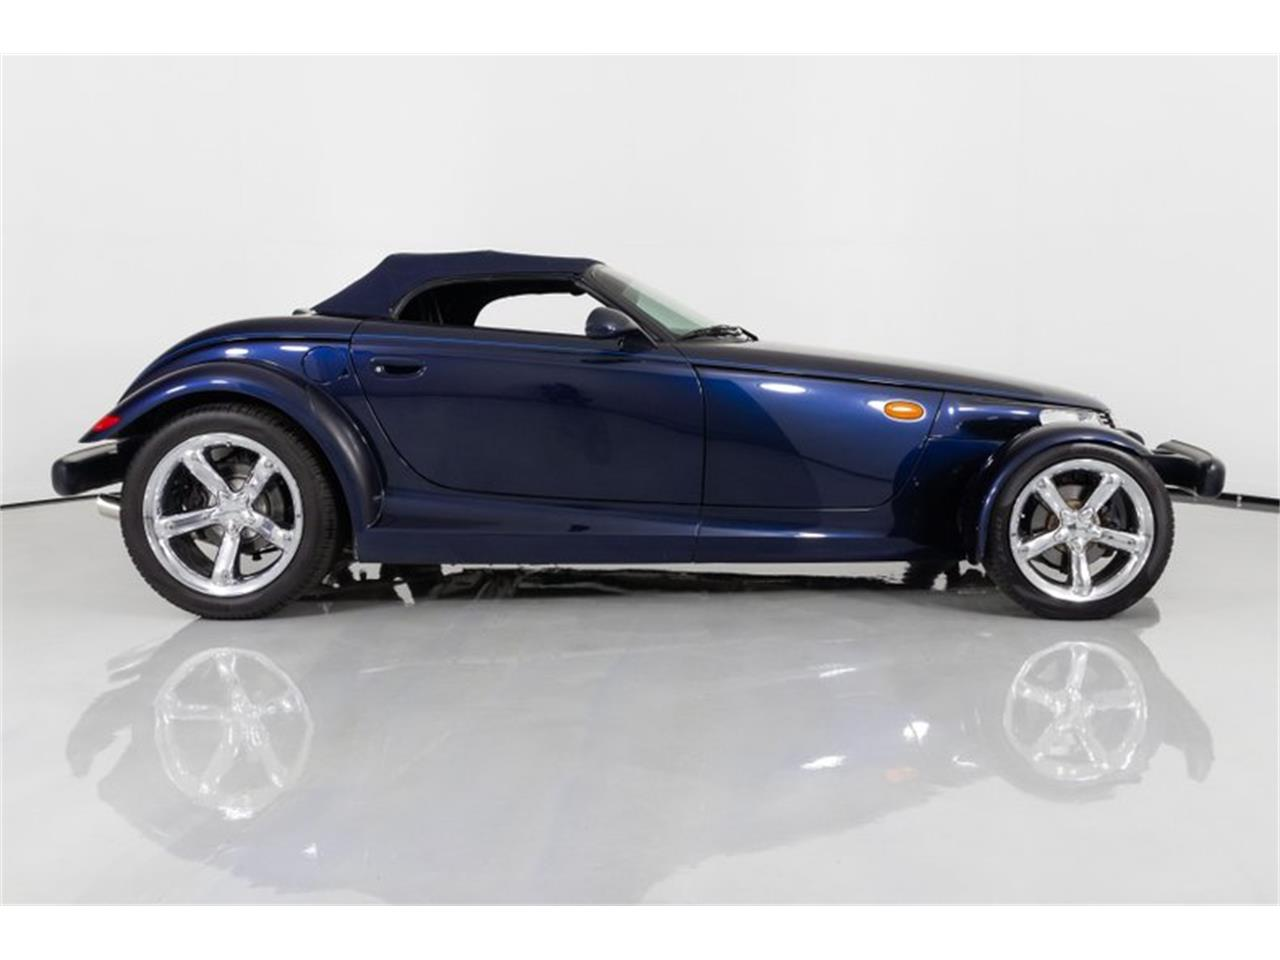 2001 Chrysler Prowler (CC-1369063) for sale in St. Charles, Missouri